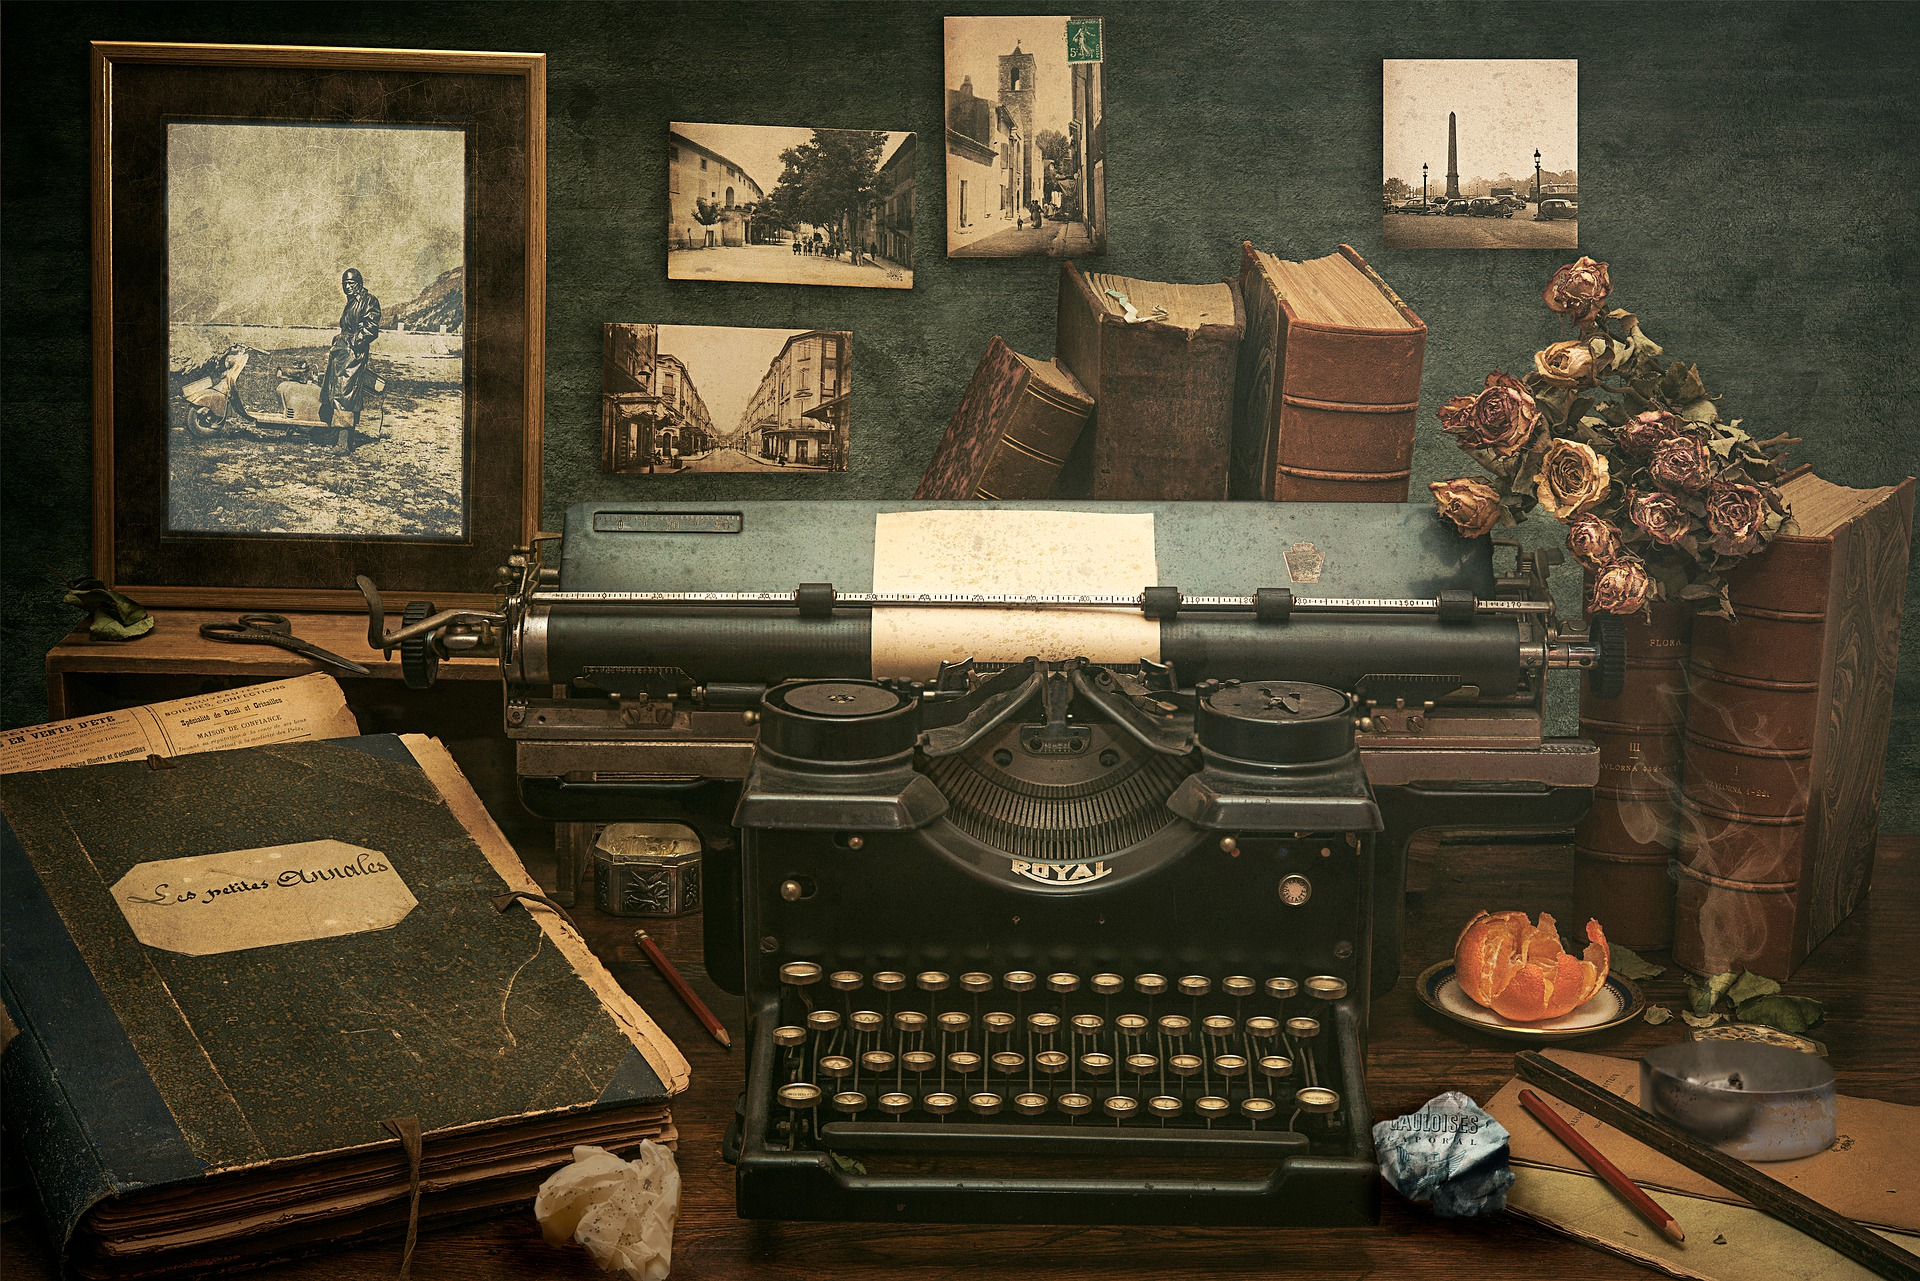 Writer's office with old typewriter